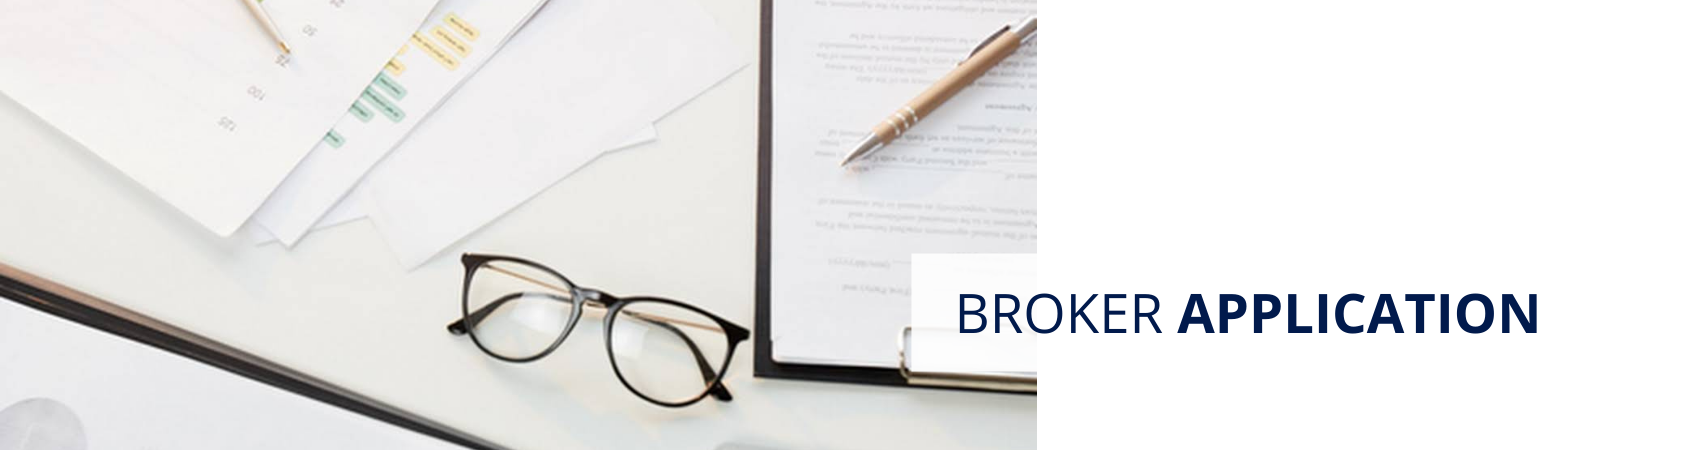 Broker Application Page